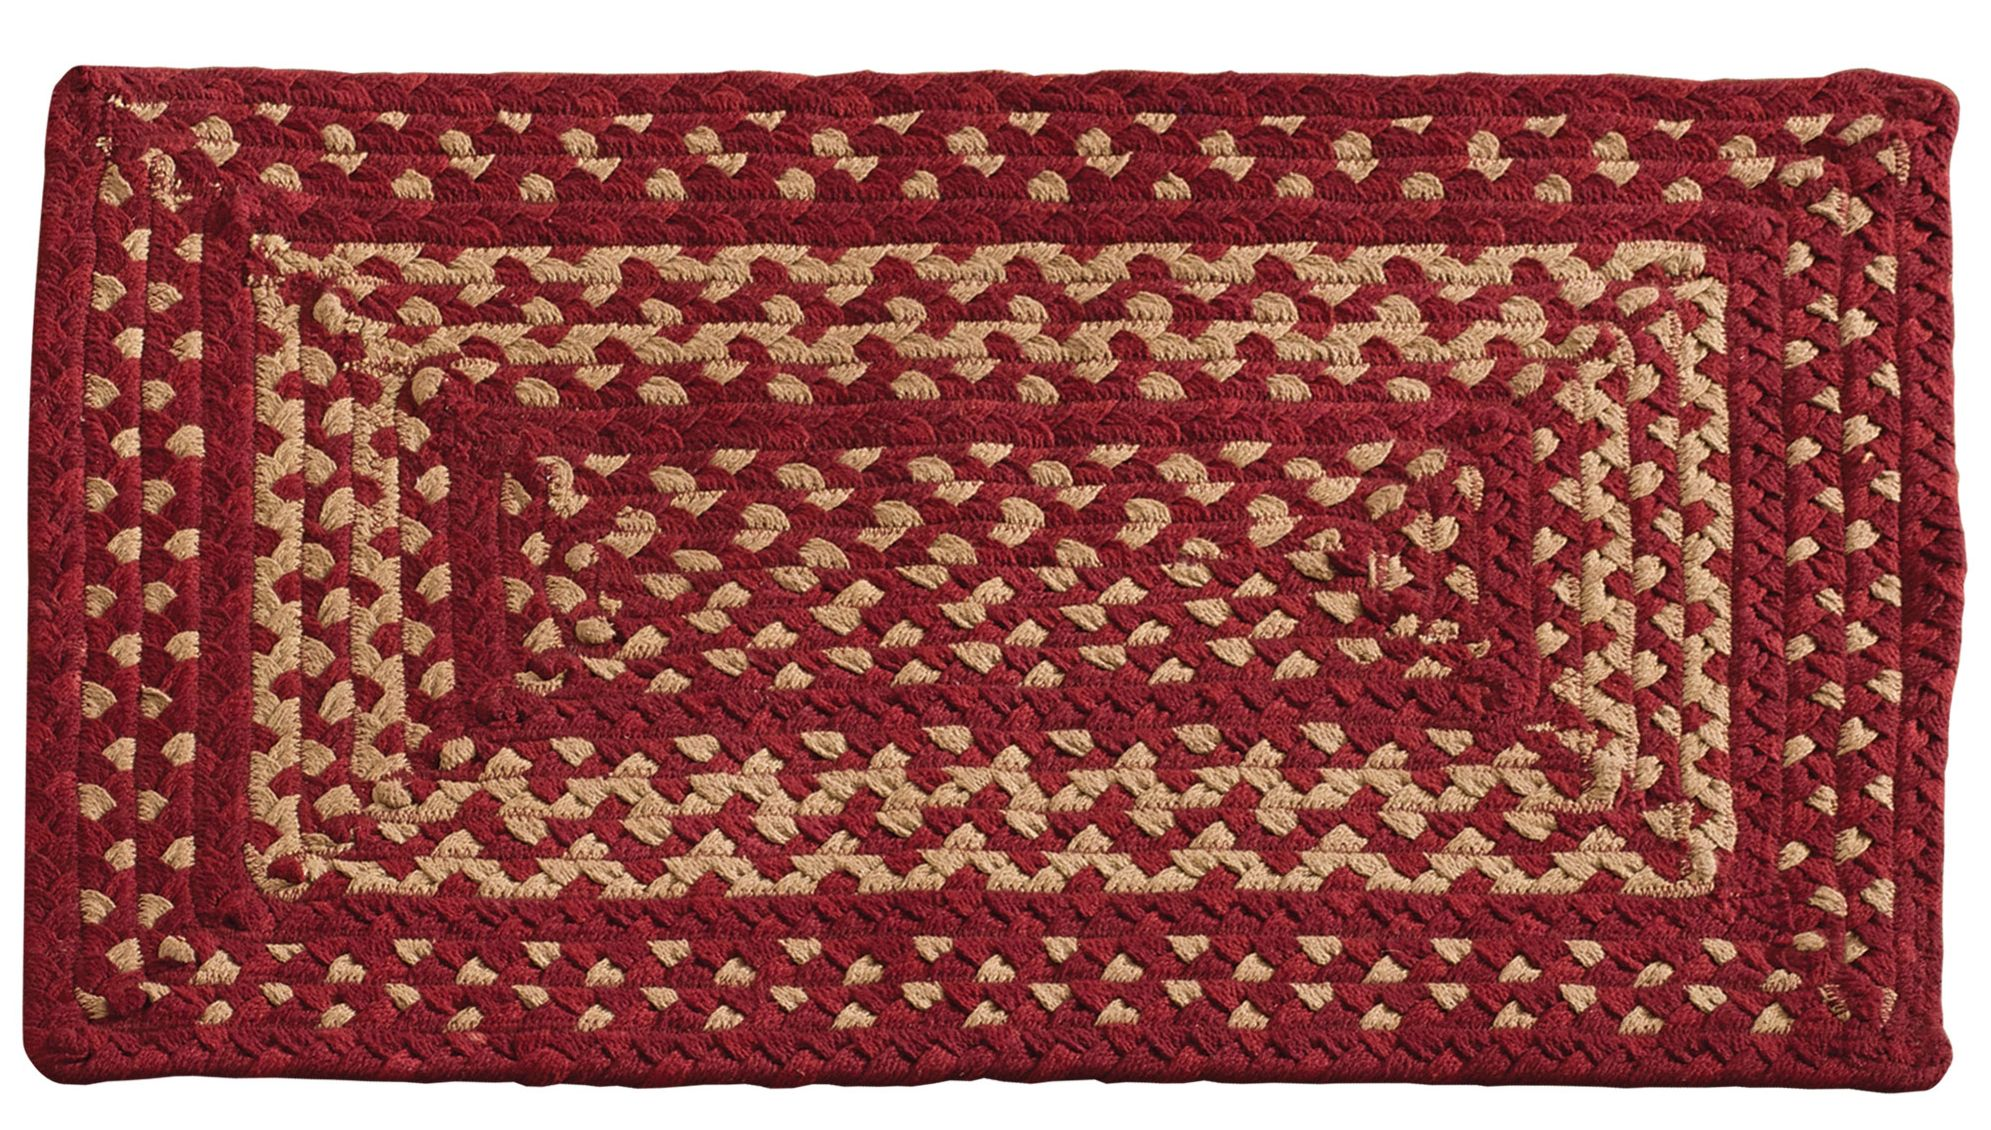 Cotton Braided Rugs Archives Primitive Home Decors